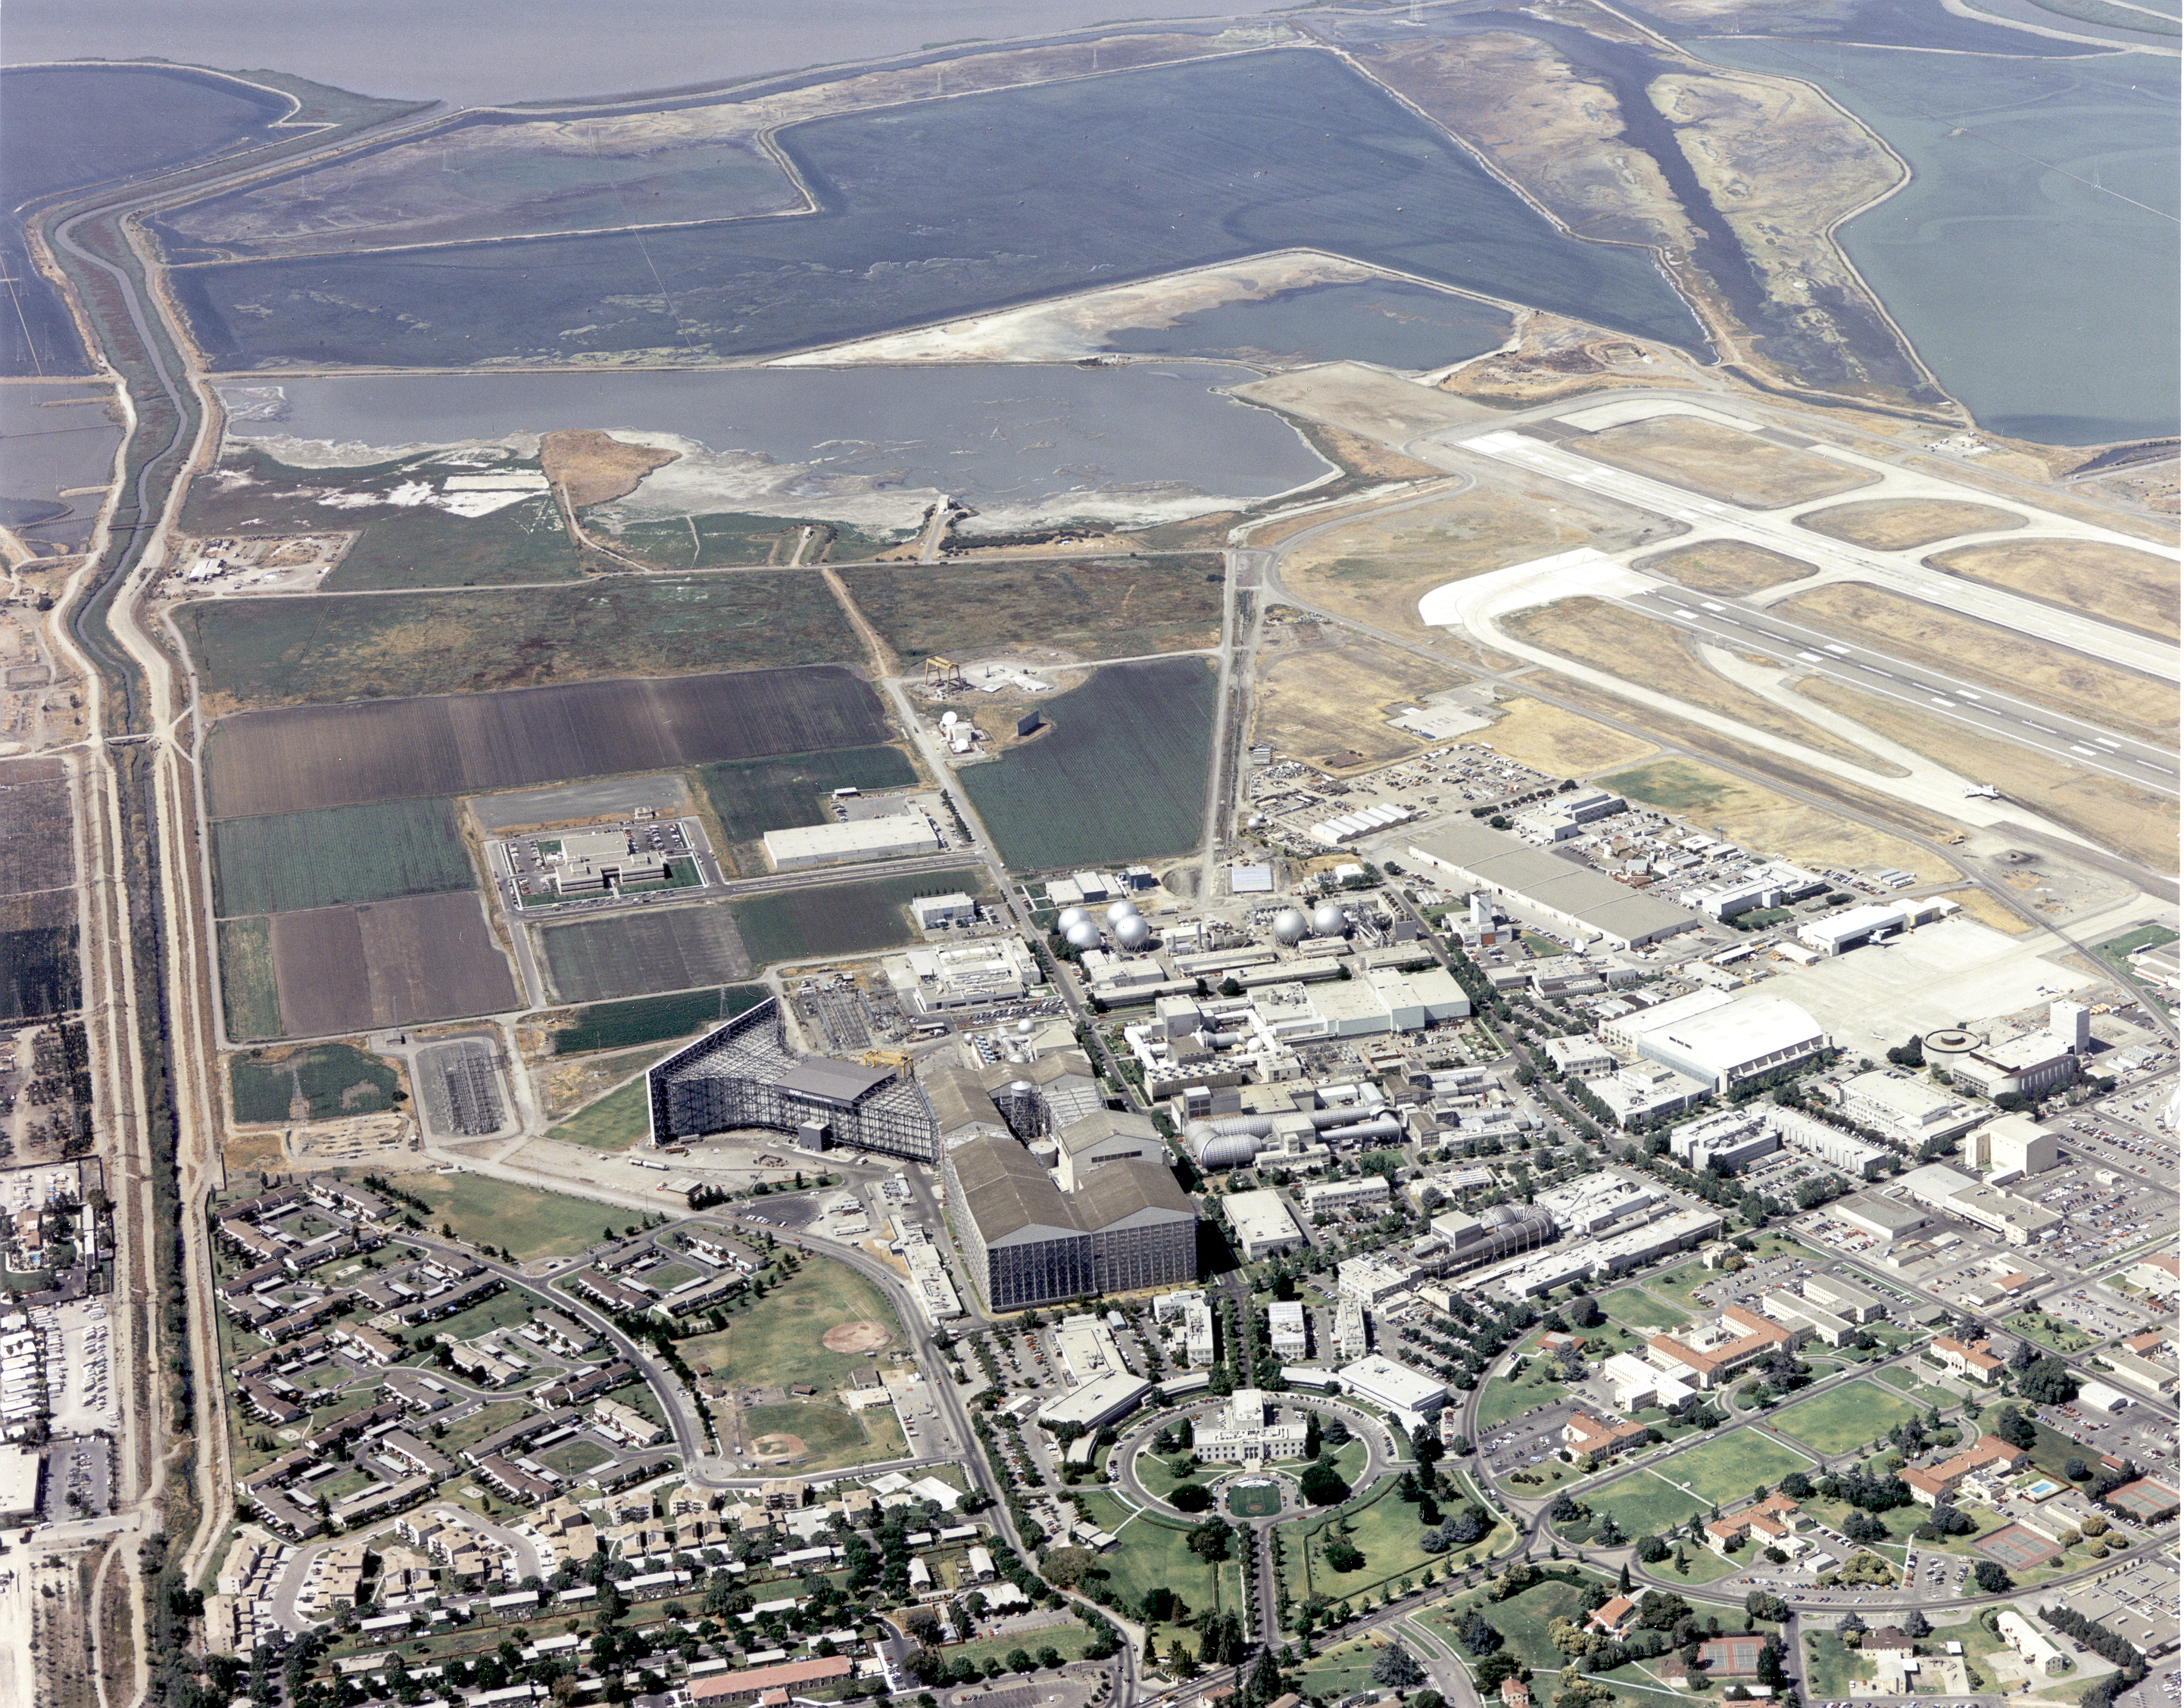 aerial view of nasa ames research center - photo #1